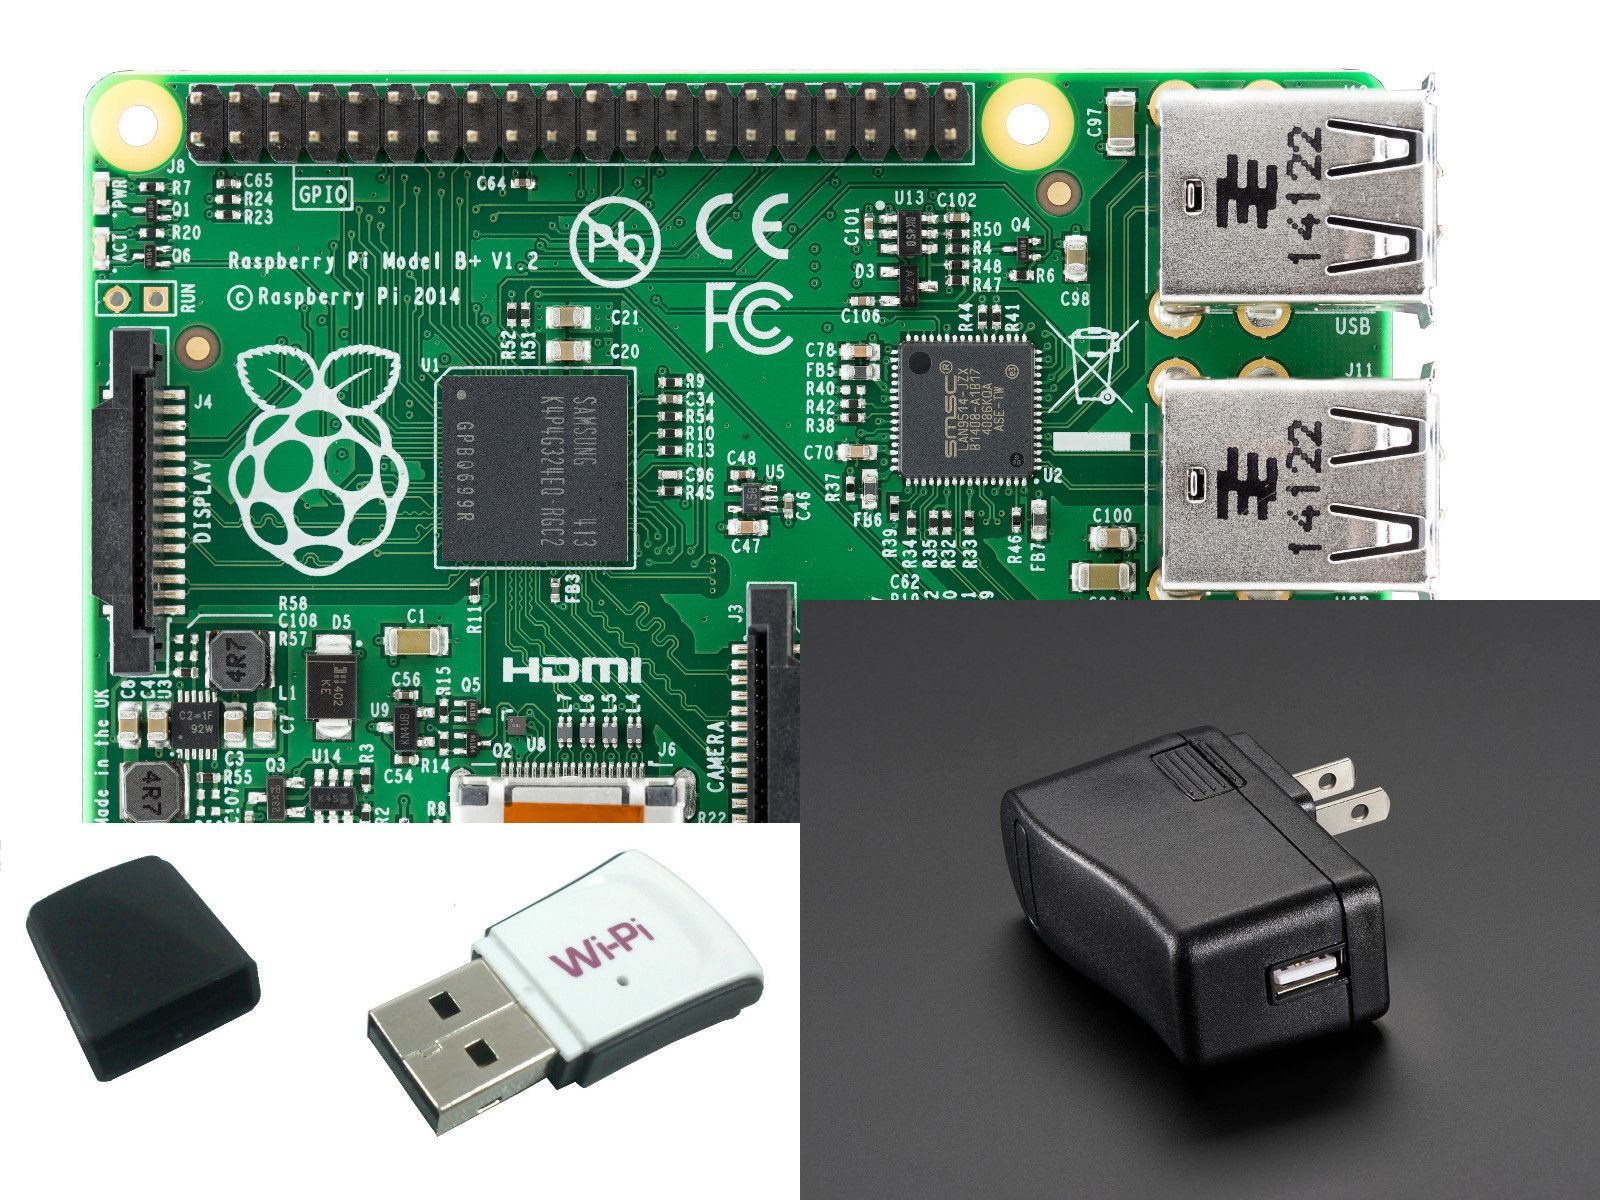 This kit ships with the Raspberry pi 3 Model B now! Wireless